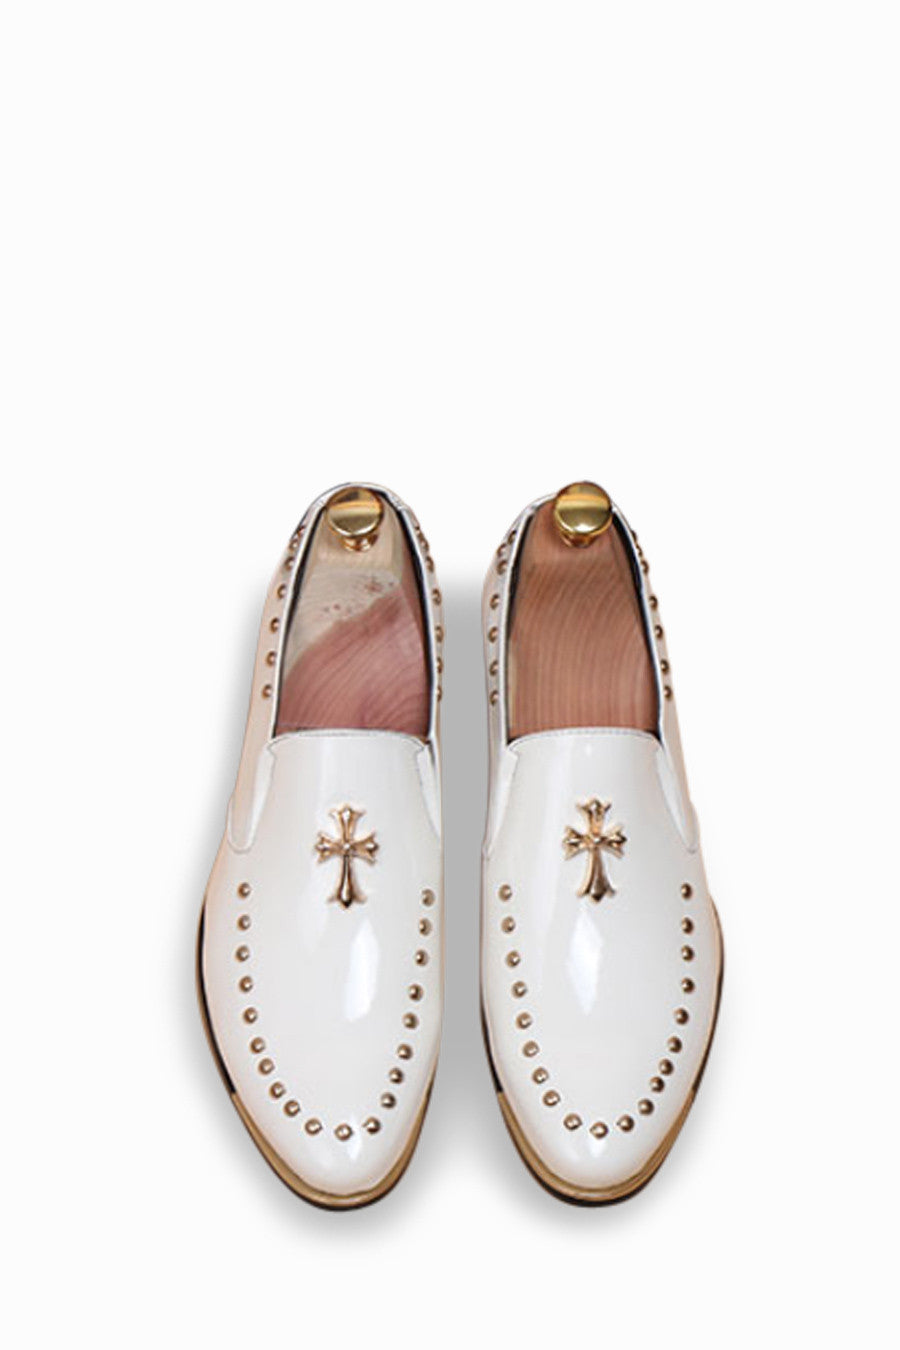 White Cross Studded Brogue Shoes